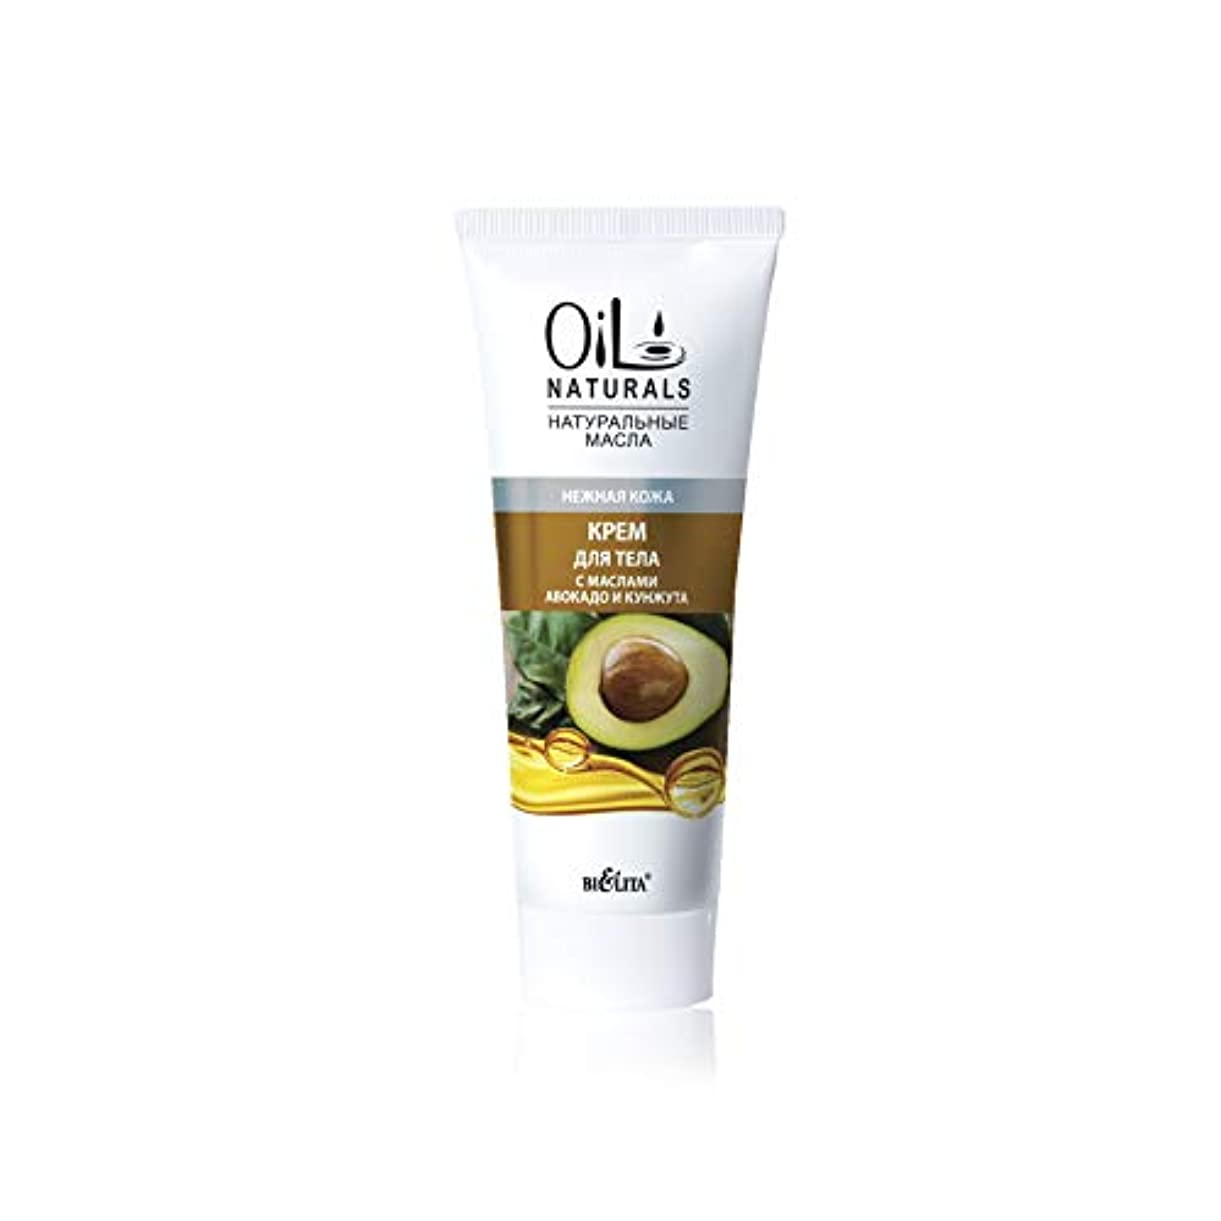 導体二週間崖Bielita & Vitex | Oil Naturals Line | Moisturizing Body Cream for Delicate Skin, 200 ml | Avocado Oil, Silk Proteins...